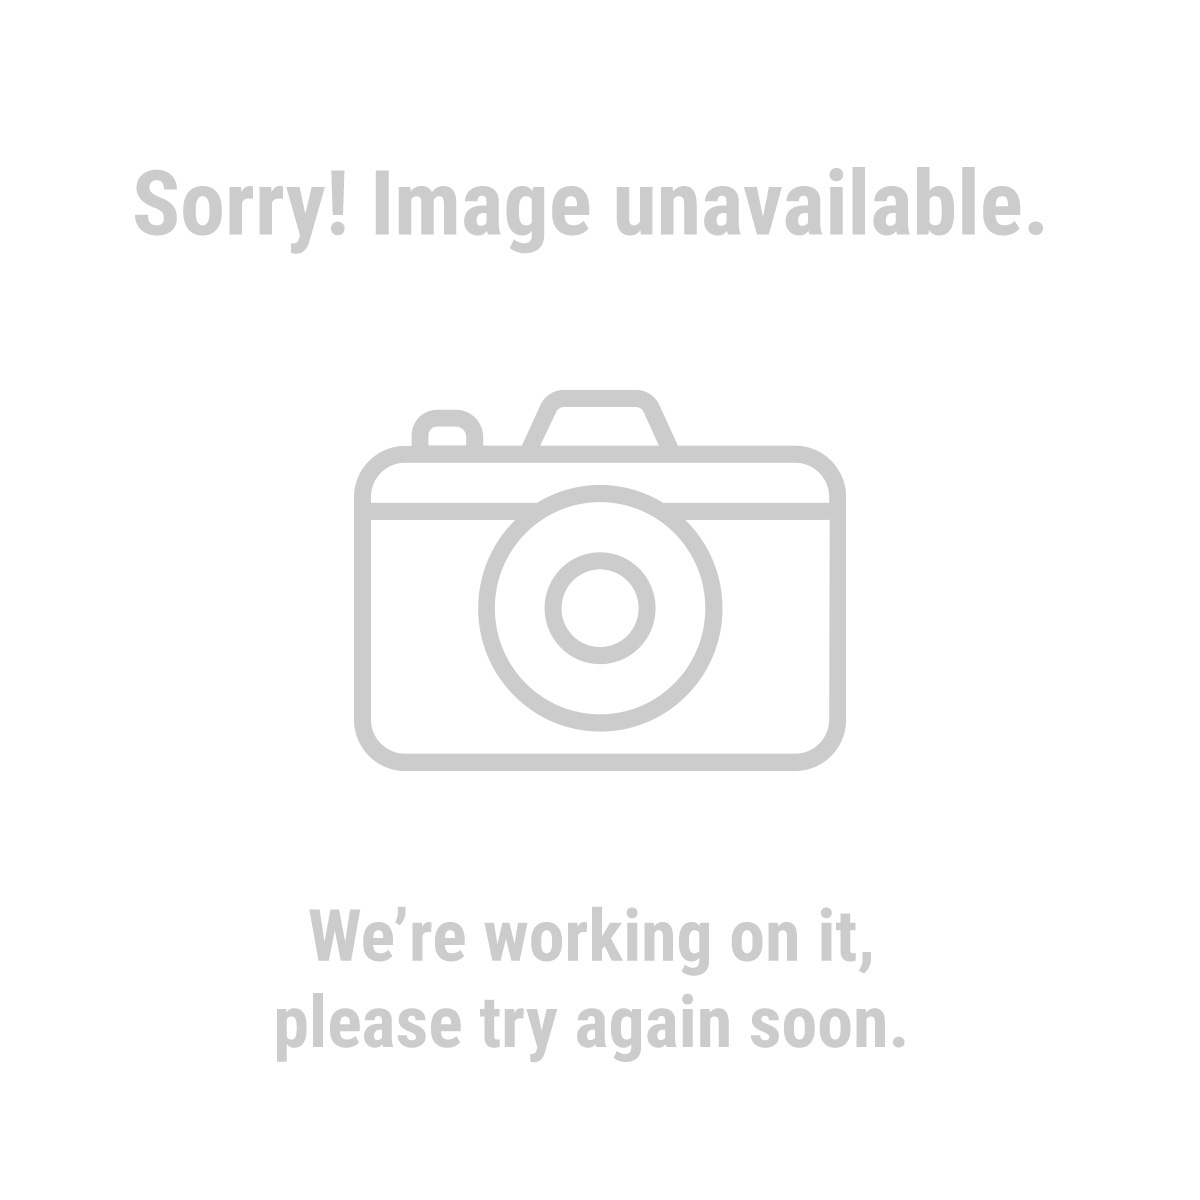 132 lb capacity roller stand 12 in double bevel sliding compound miter saw with laser guide system sciox Gallery